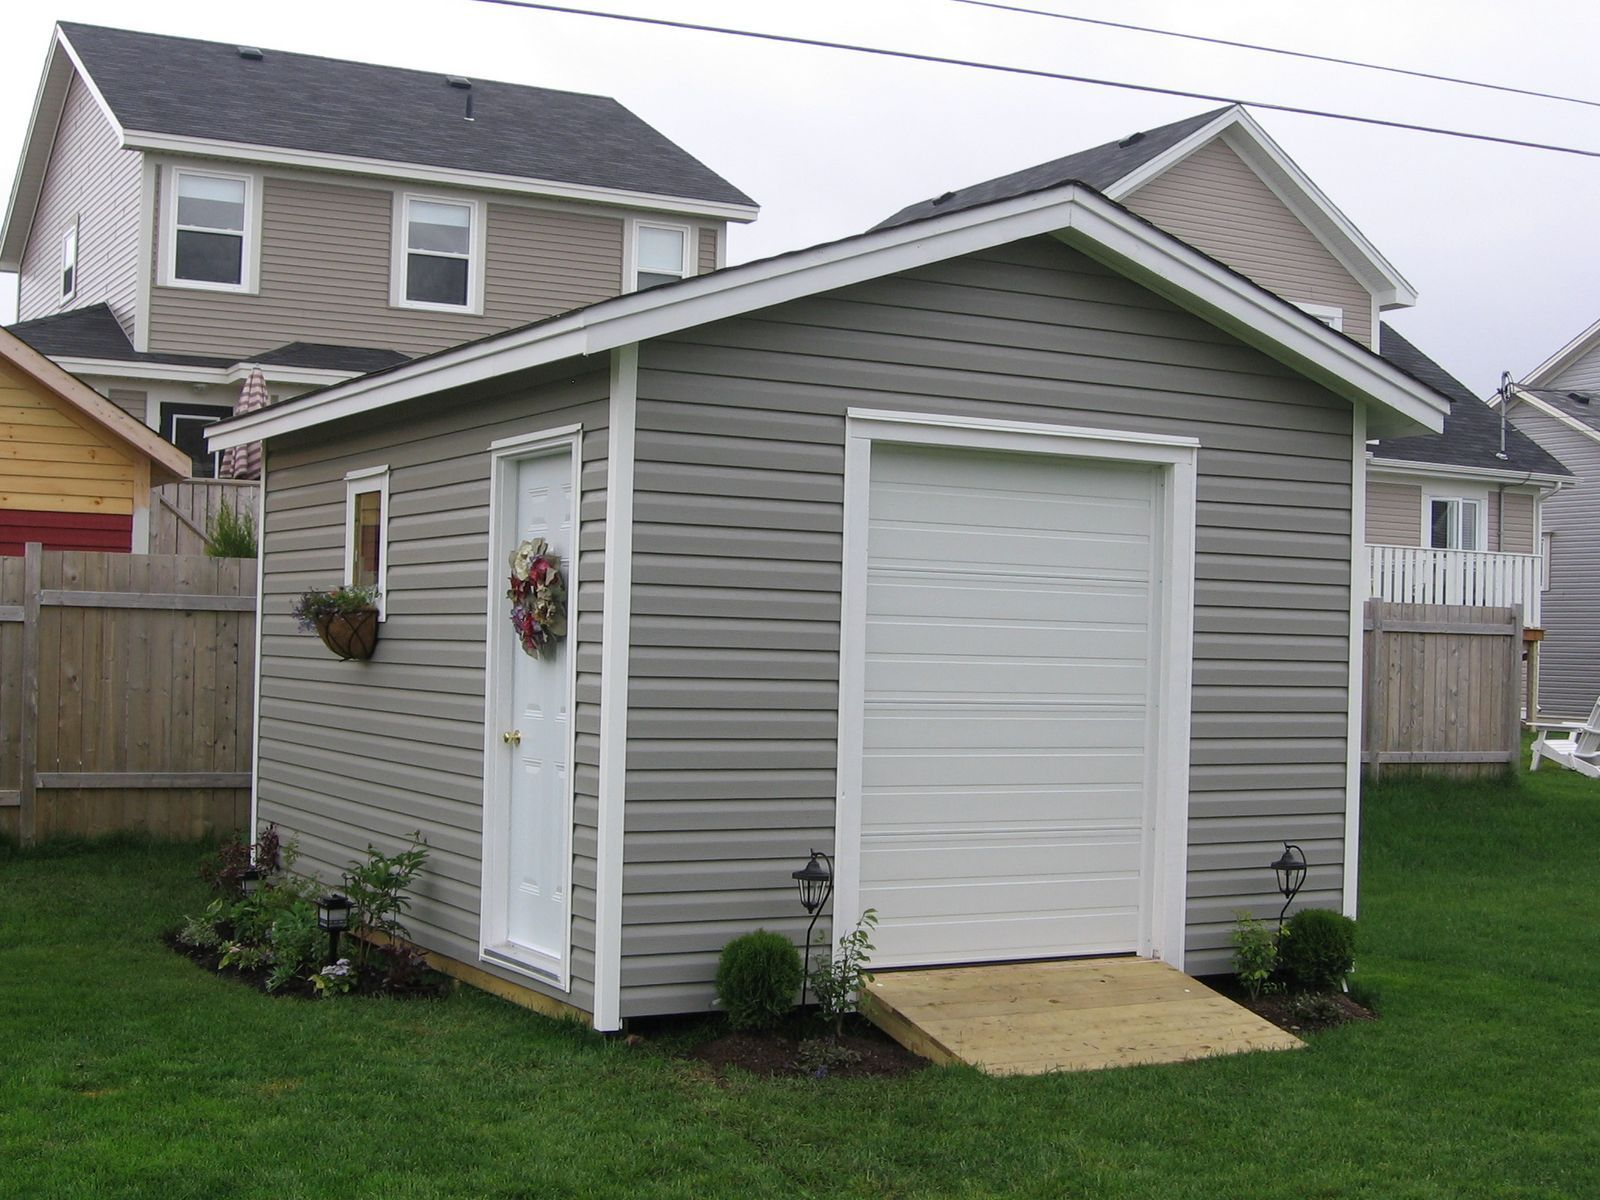 Small Garage Doors For Sheds Design Small Garage Door